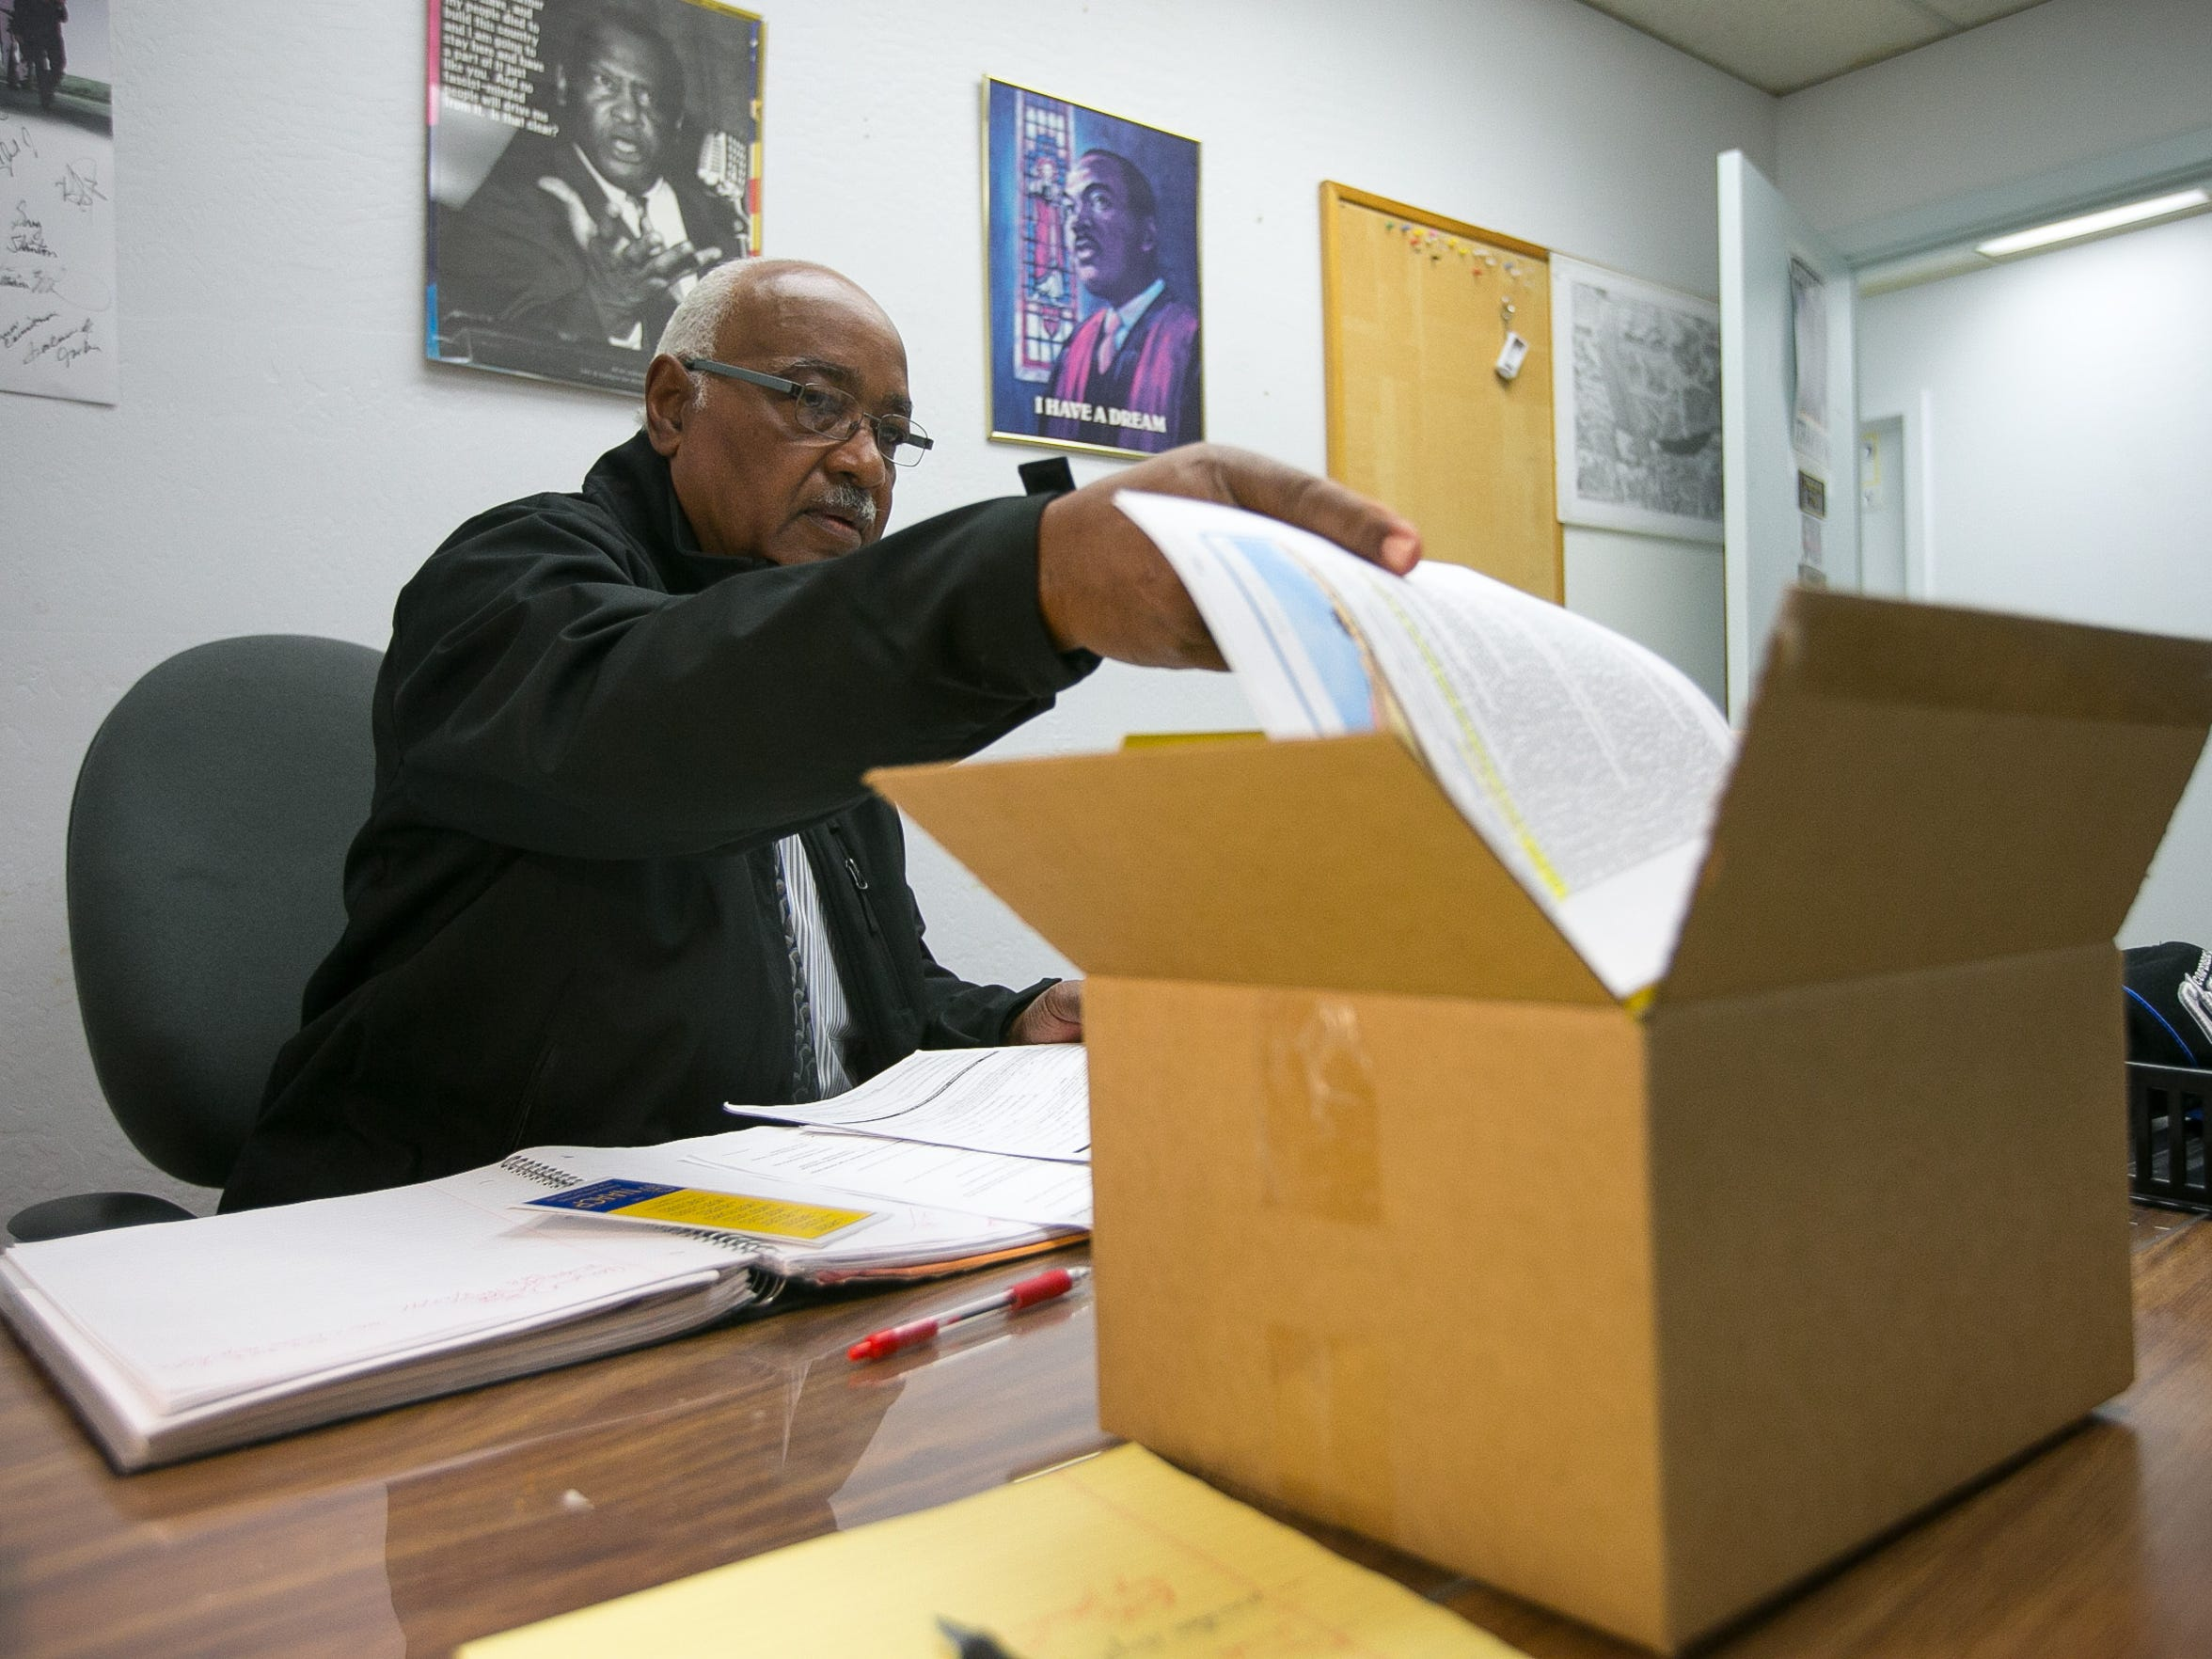 Reverend Oscar Tillman packs up his office during his